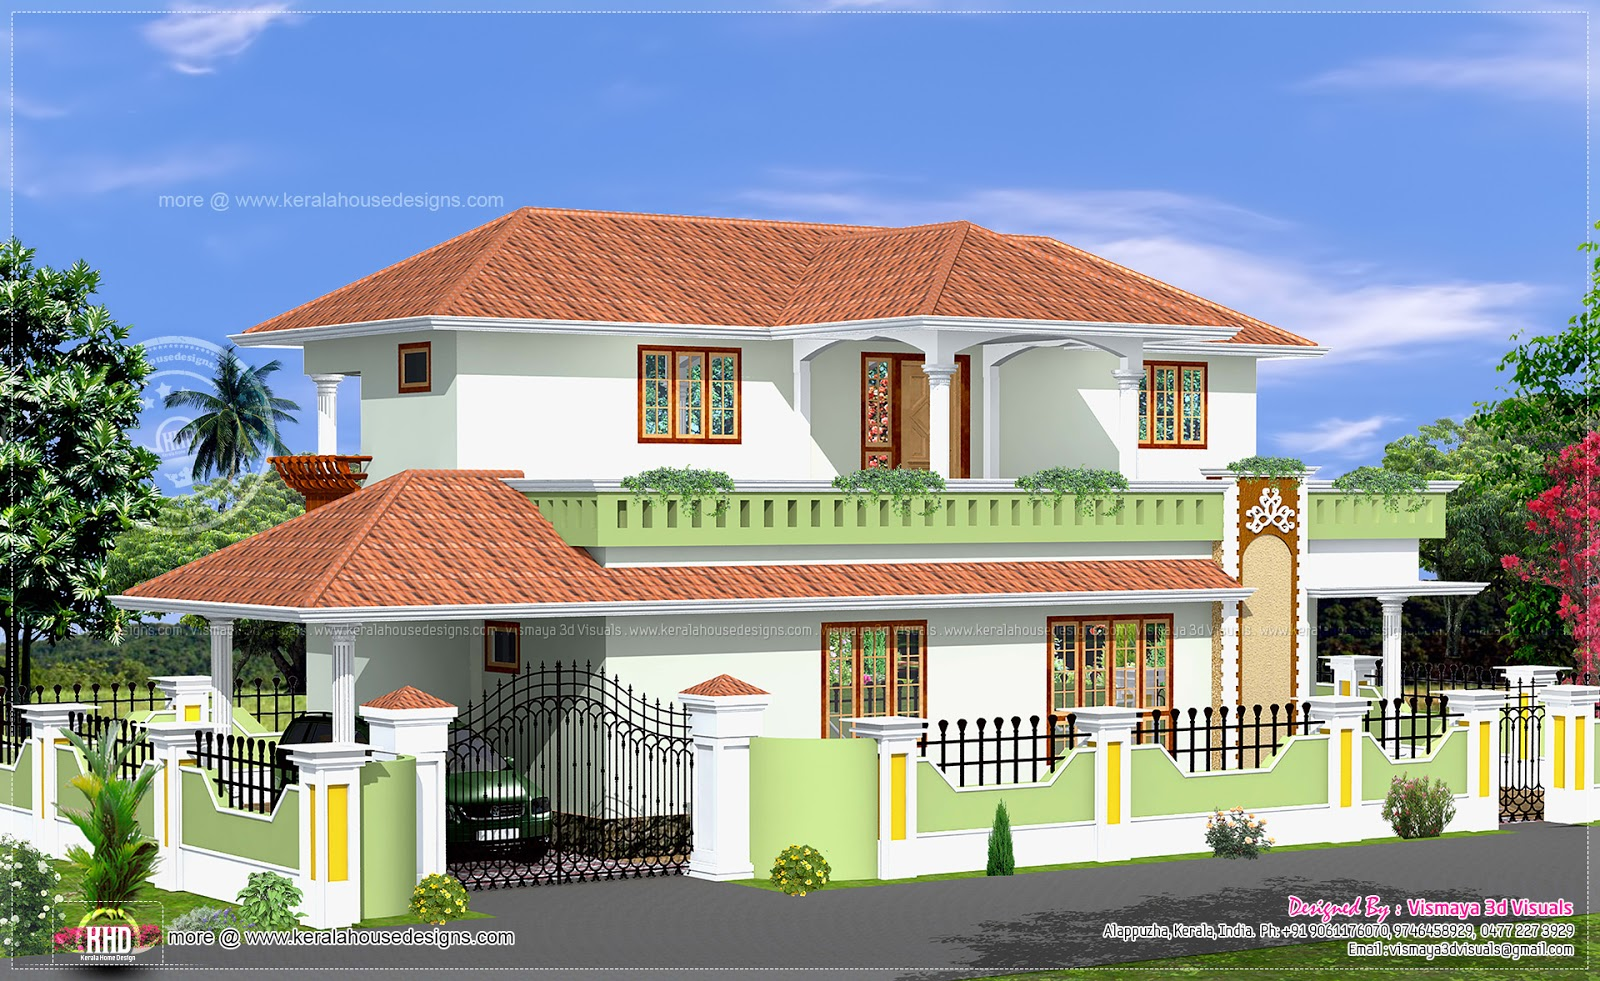 Simple 4 bed room kerala style house kerala home design and floor plans - Home design pic ...